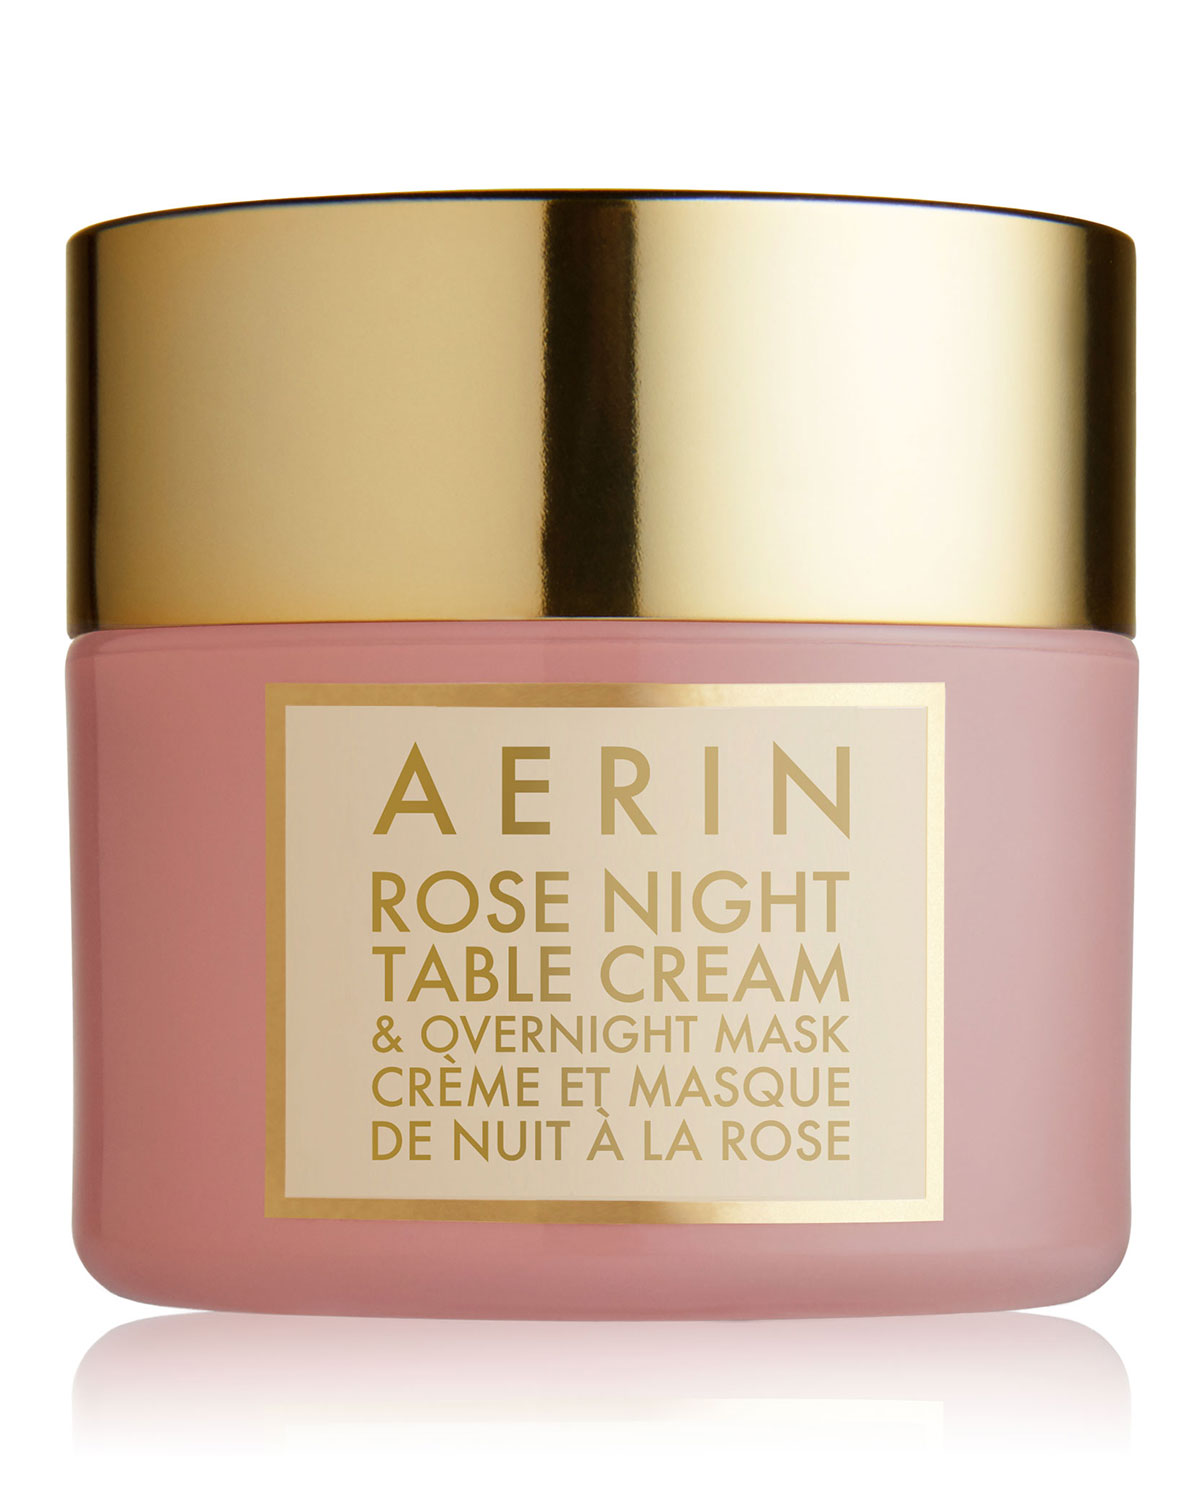 Rose Night Table Cream & Overnight Mask, 1.7 Oz. by Aerin